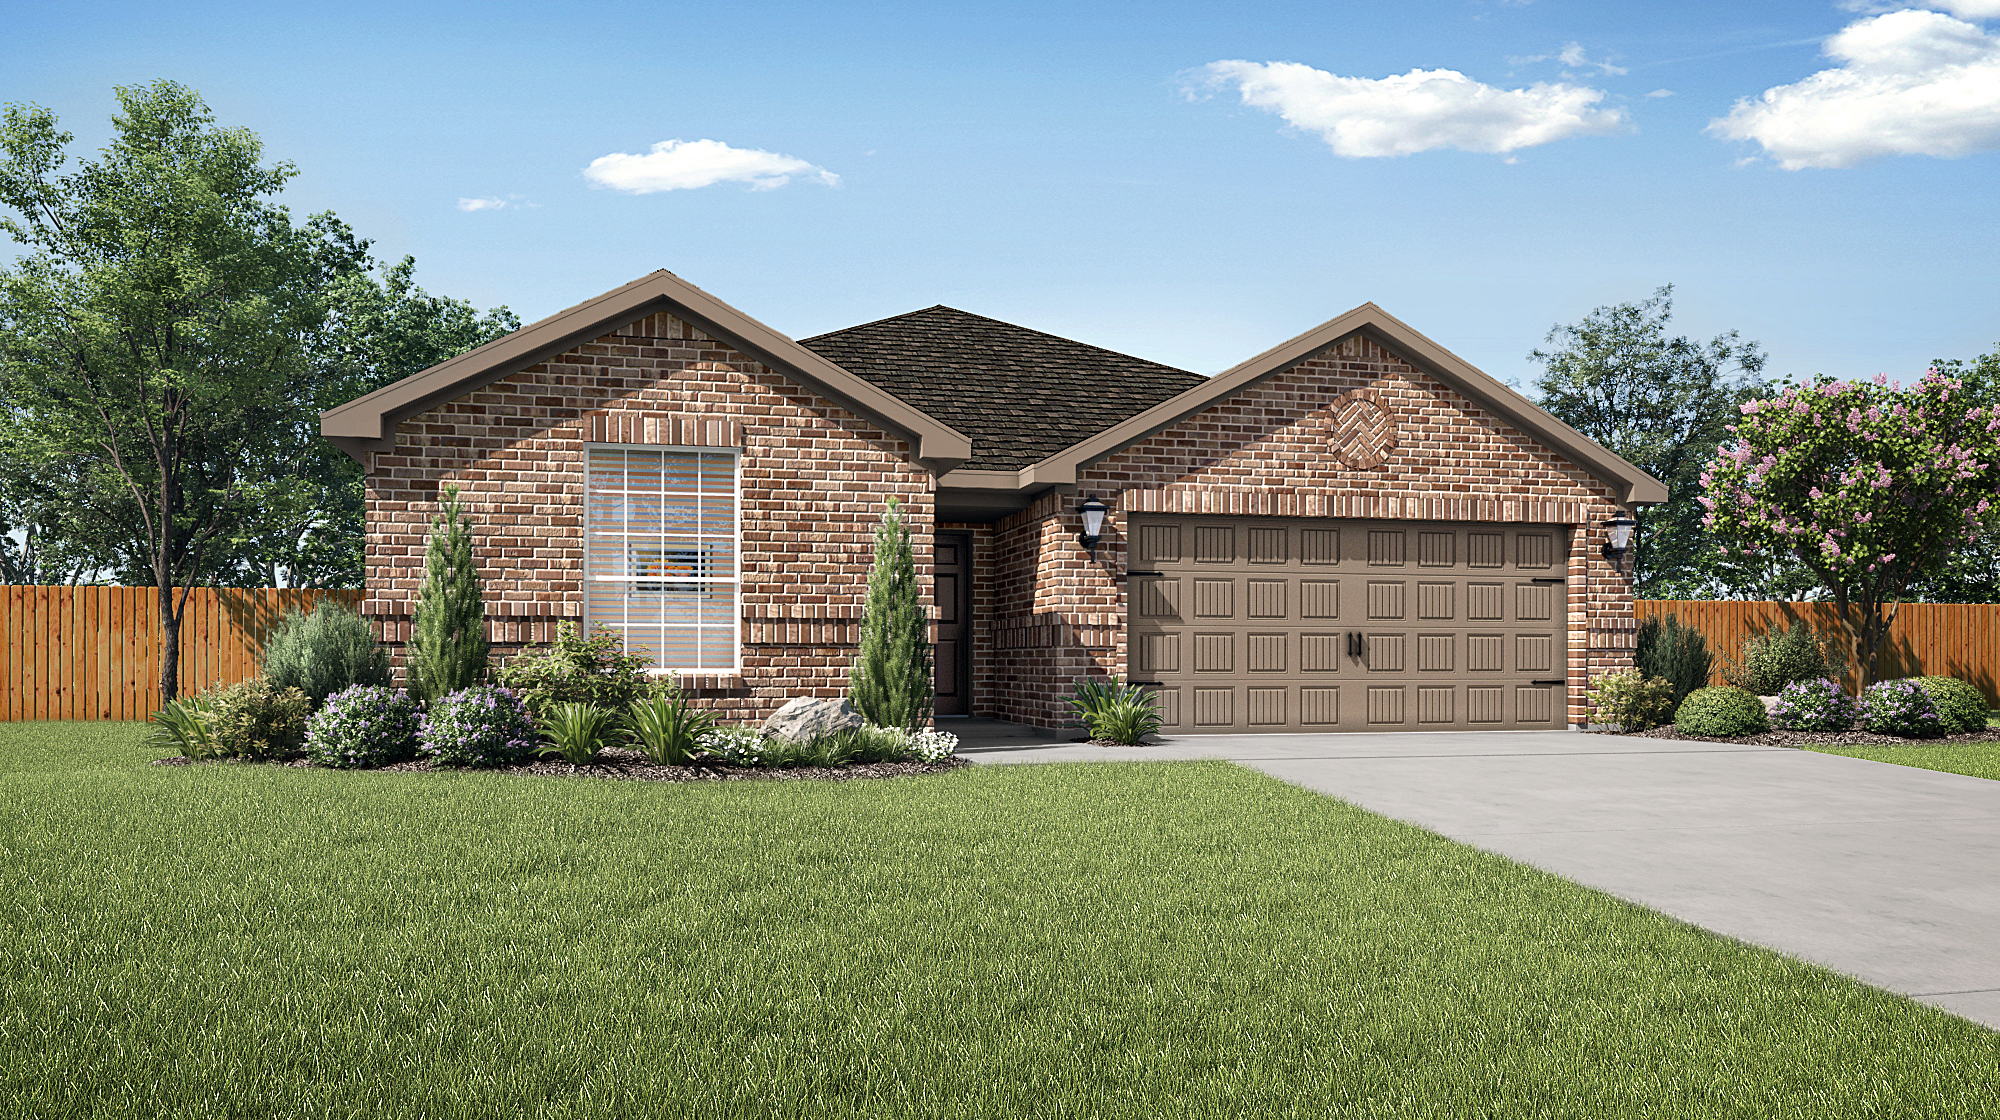 The Sabine plan at Pinewood Trails by LGI Homes